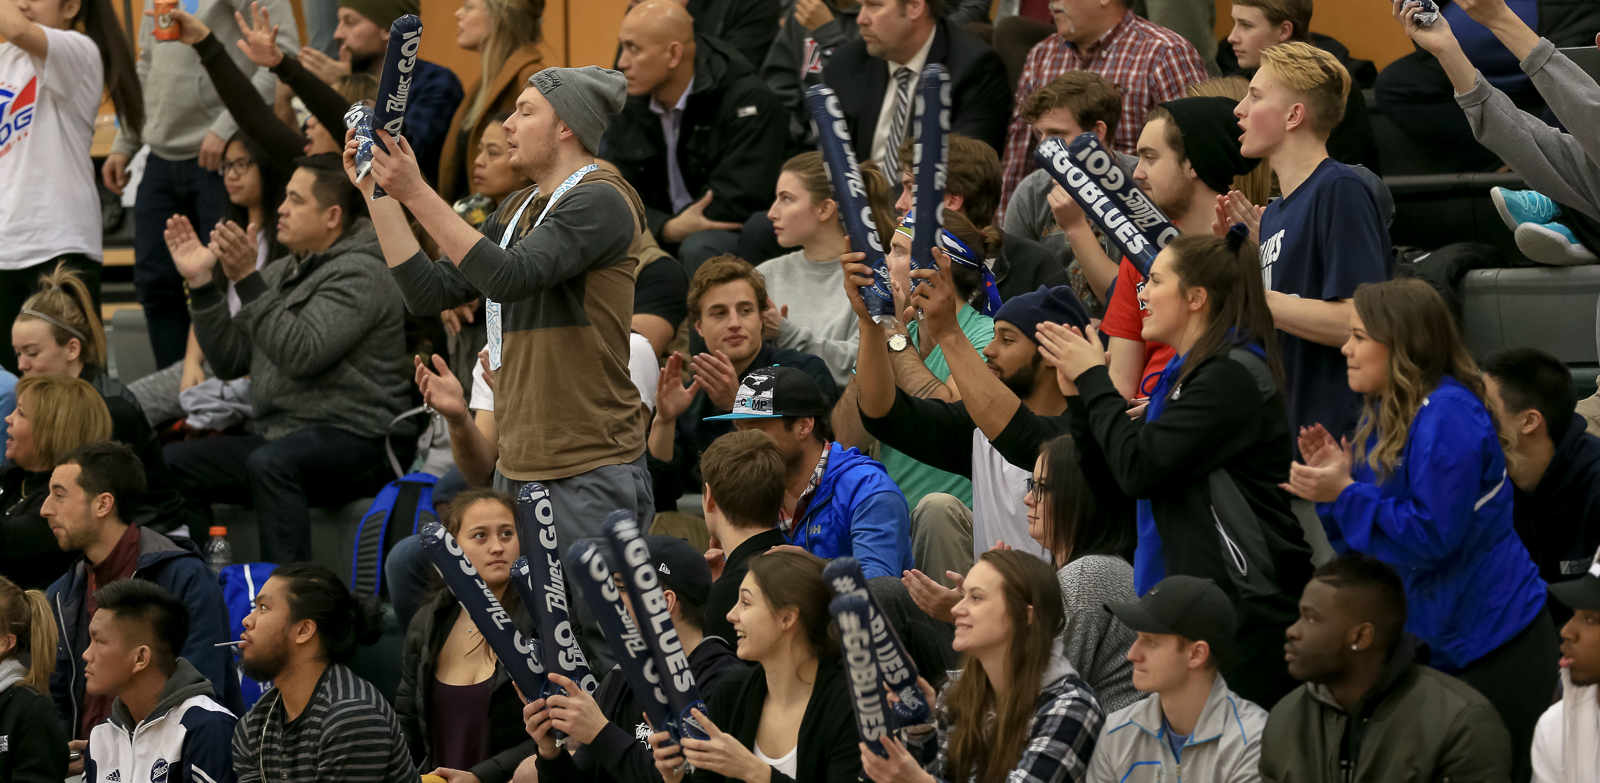 Blues fans were out in full force at the PACWEST Basketball Championships at Quest University. Photo Paul Yates / Vancouver Sports Pictures